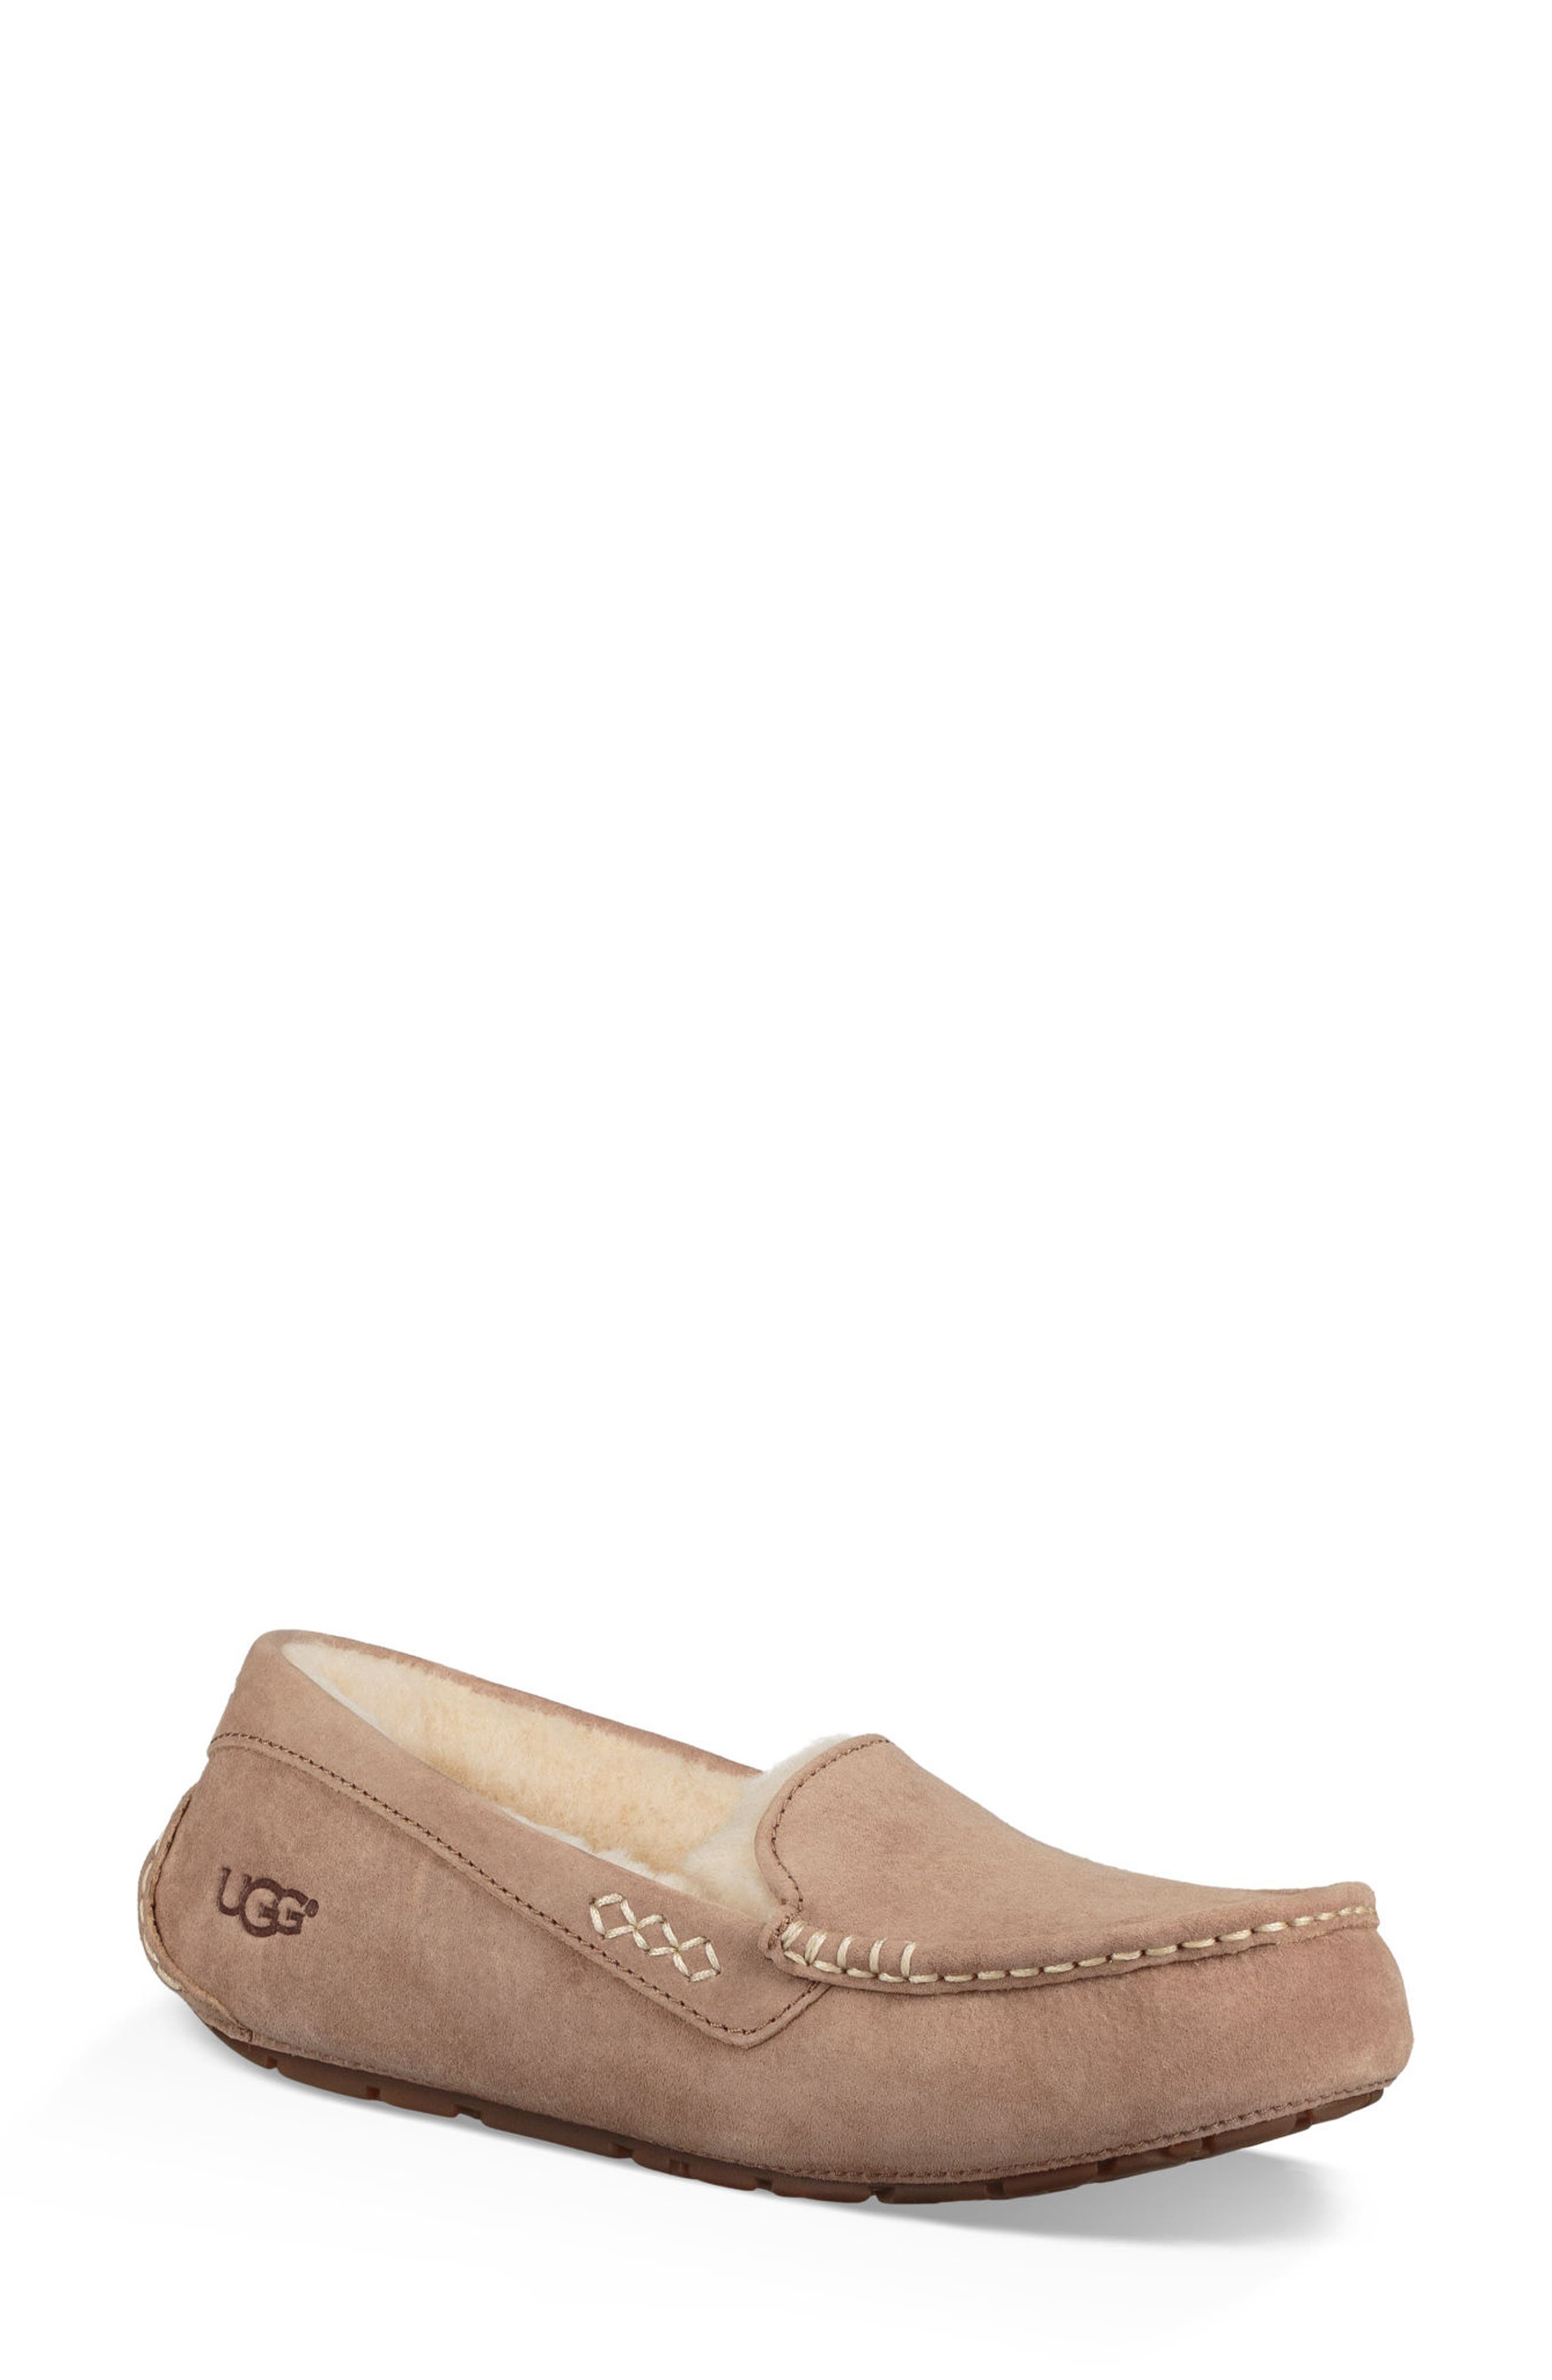 Ansley Water Resistant Slipper,                         Main,                         color, Fawn Leather